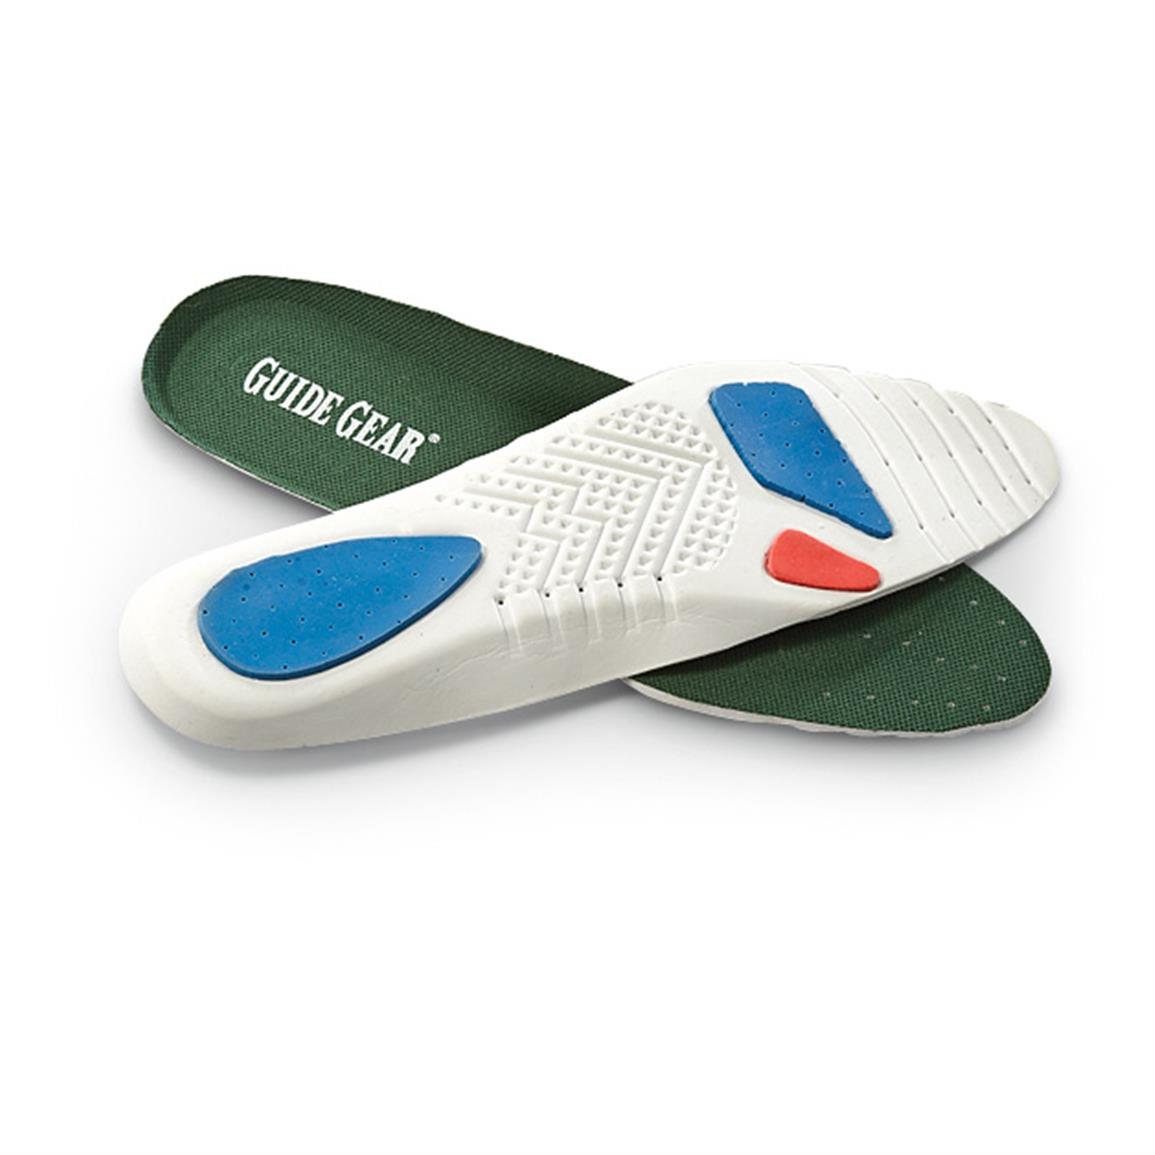 Sweet relief! Removable shock-absorbing insole